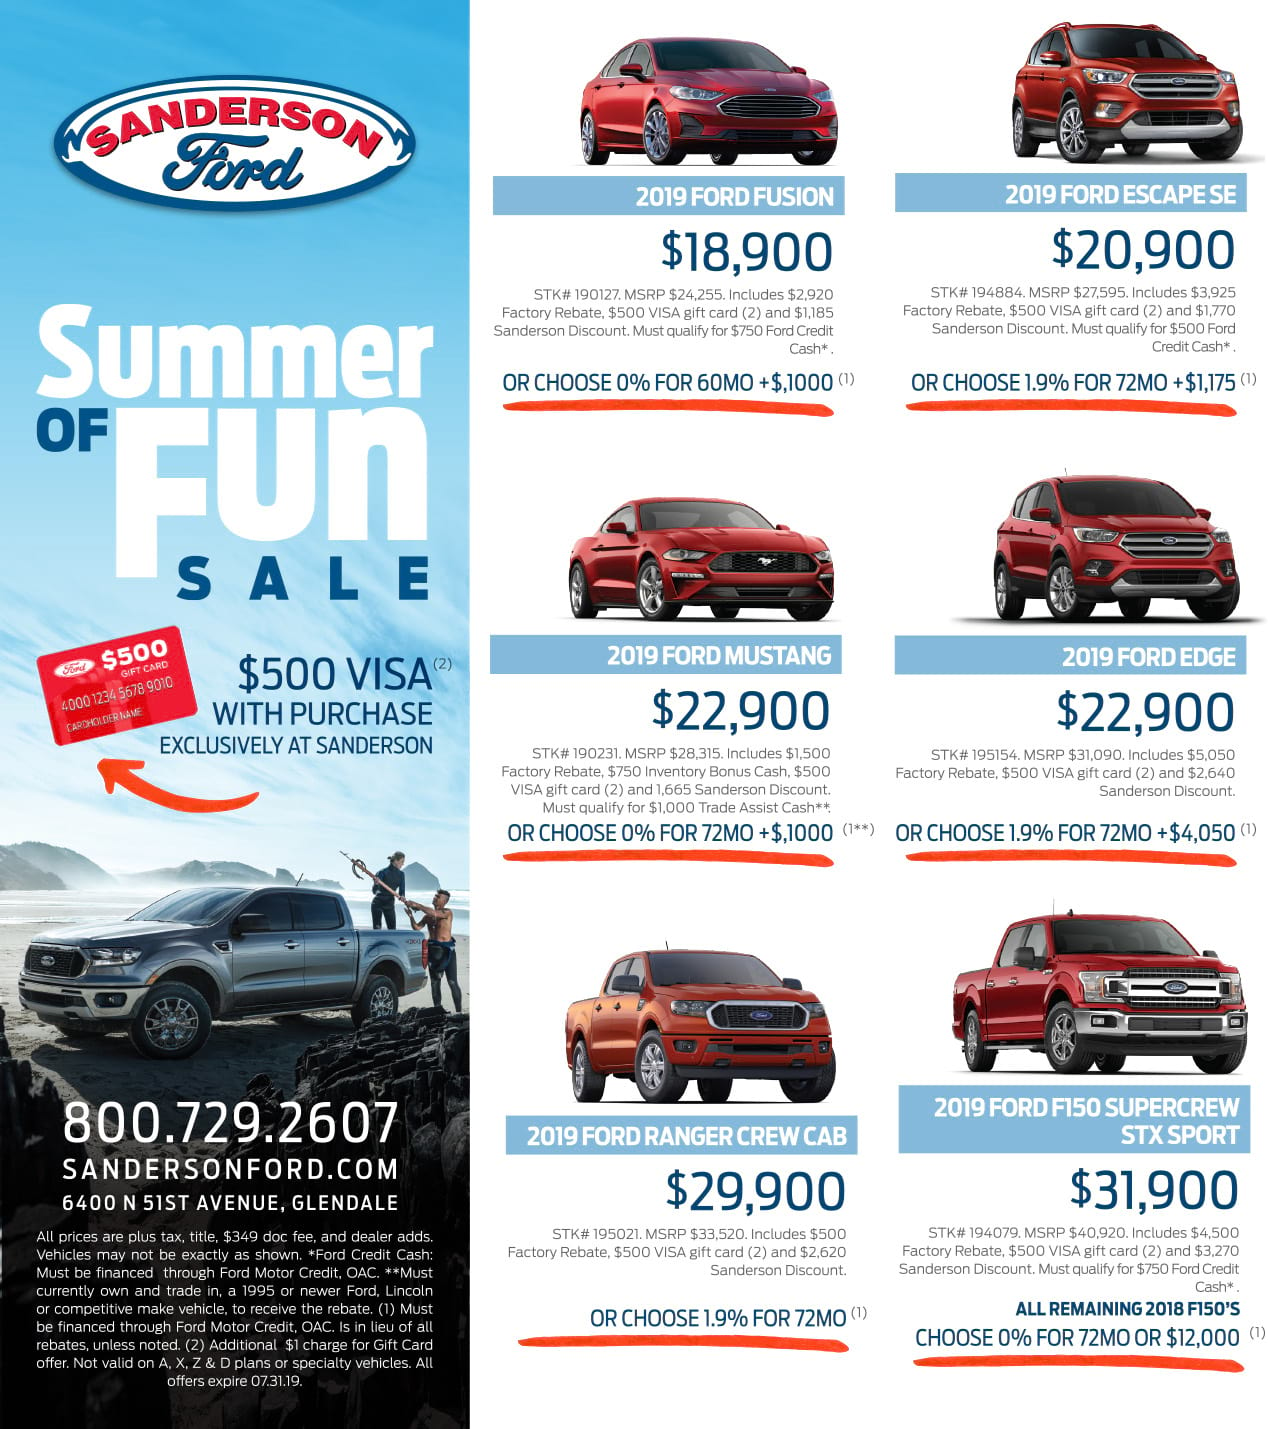 Sanderson Ford May Print Ad